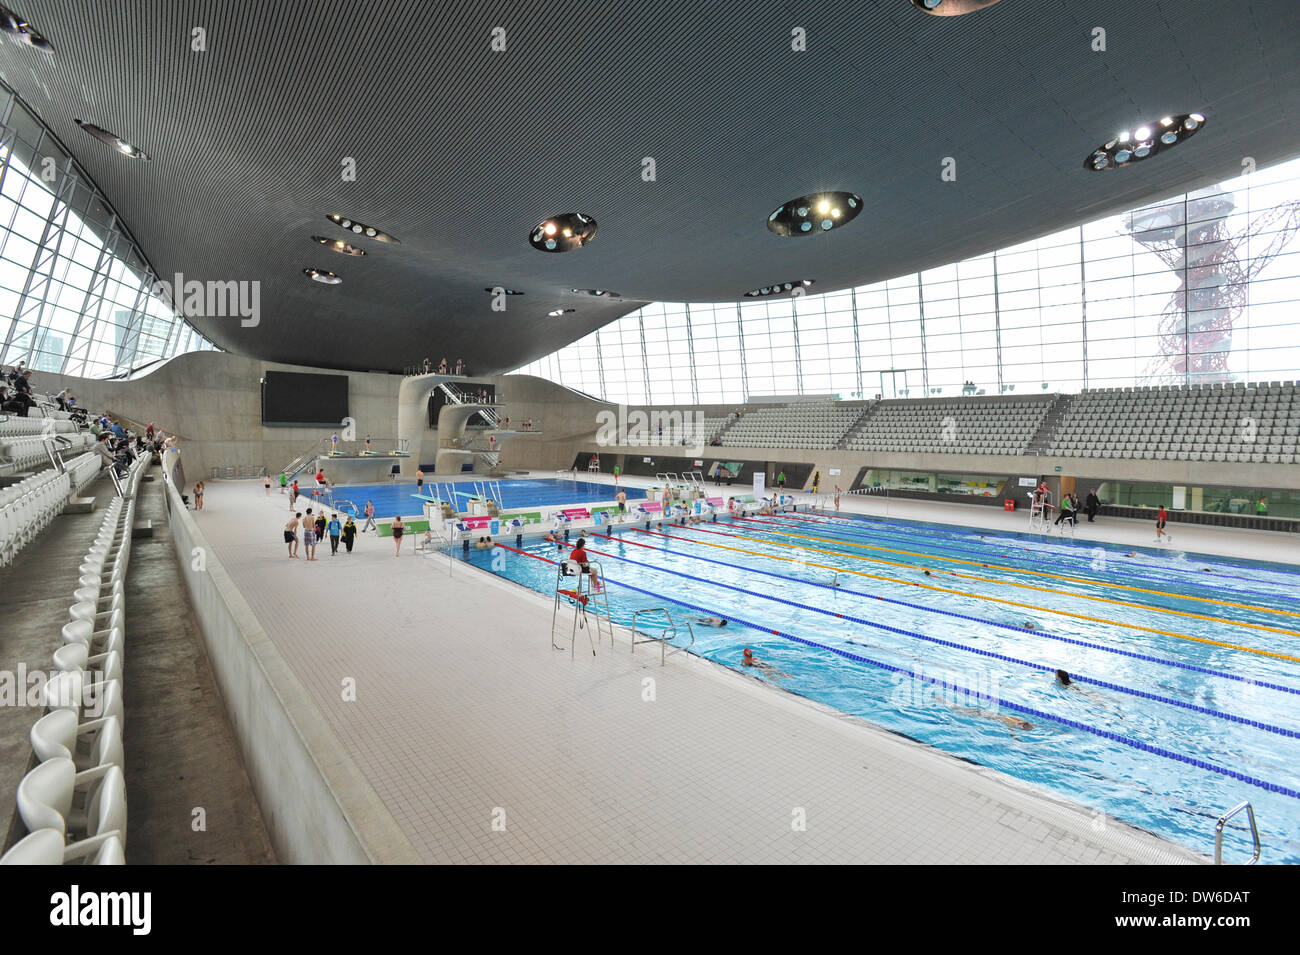 Queen Elizabeth Olympic Park, Stratford, London, UK. 1st March 2014. The Olympic  Pool In The Aquatic Centre At The Queen Elizabeth Olympic Park In Stratford  ...